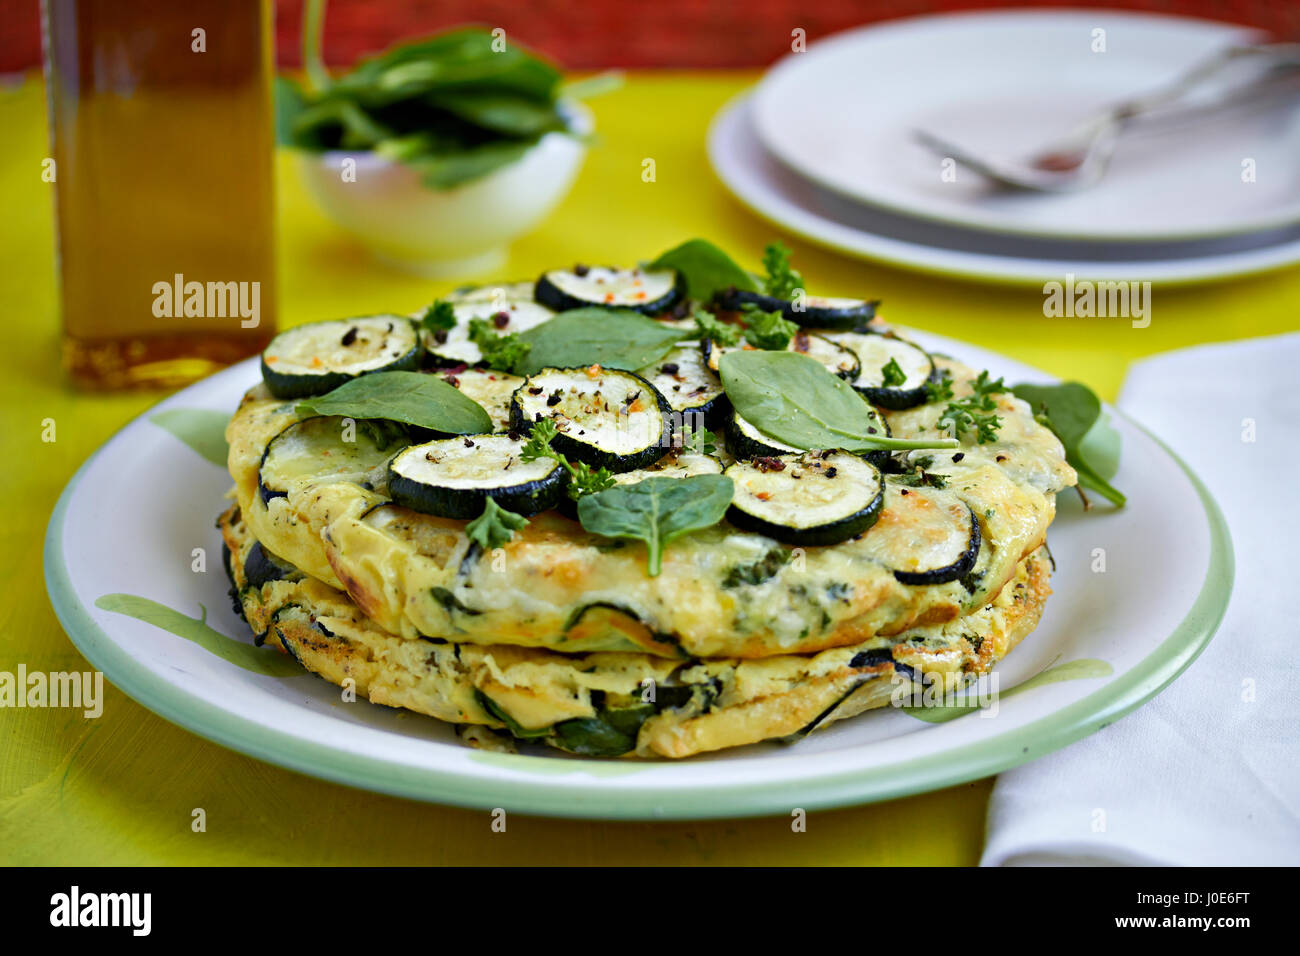 Courgette tortilla with baby spinach - Stock Image